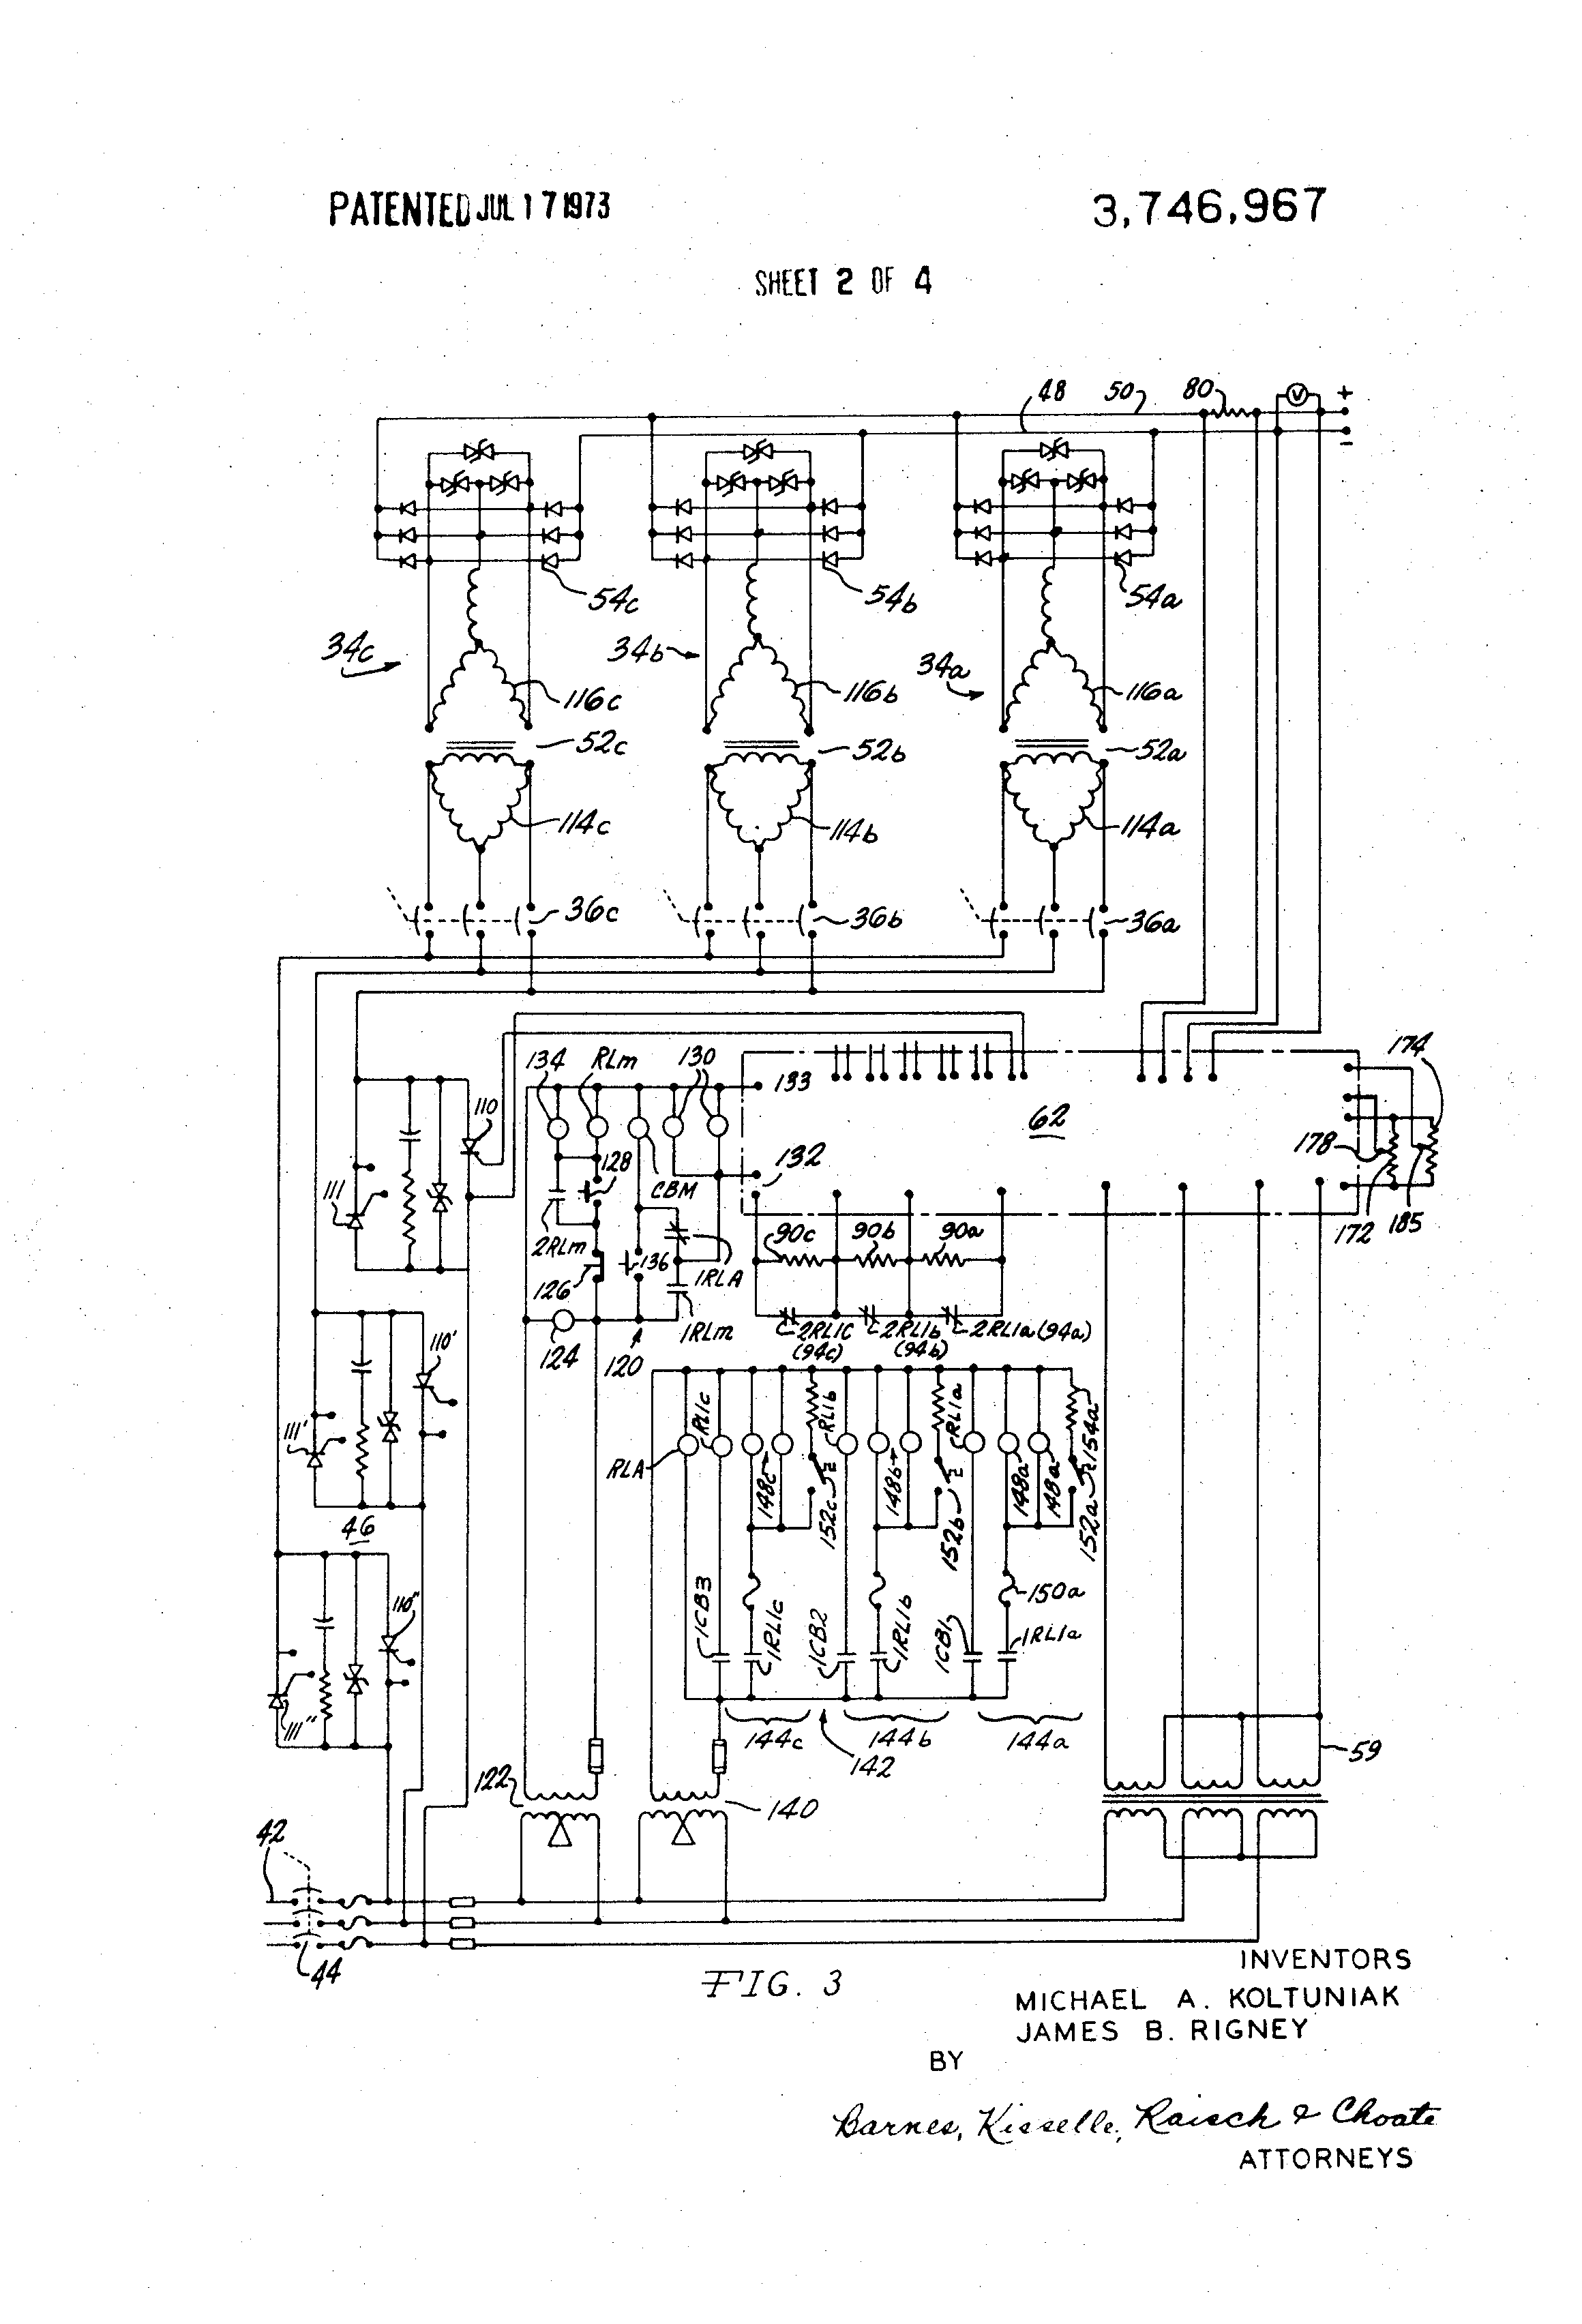 afi wiper motor wiring diagram afi image wiring sprague wiper motor wiring diagram sprague auto wiring diagram on afi wiper motor wiring diagram